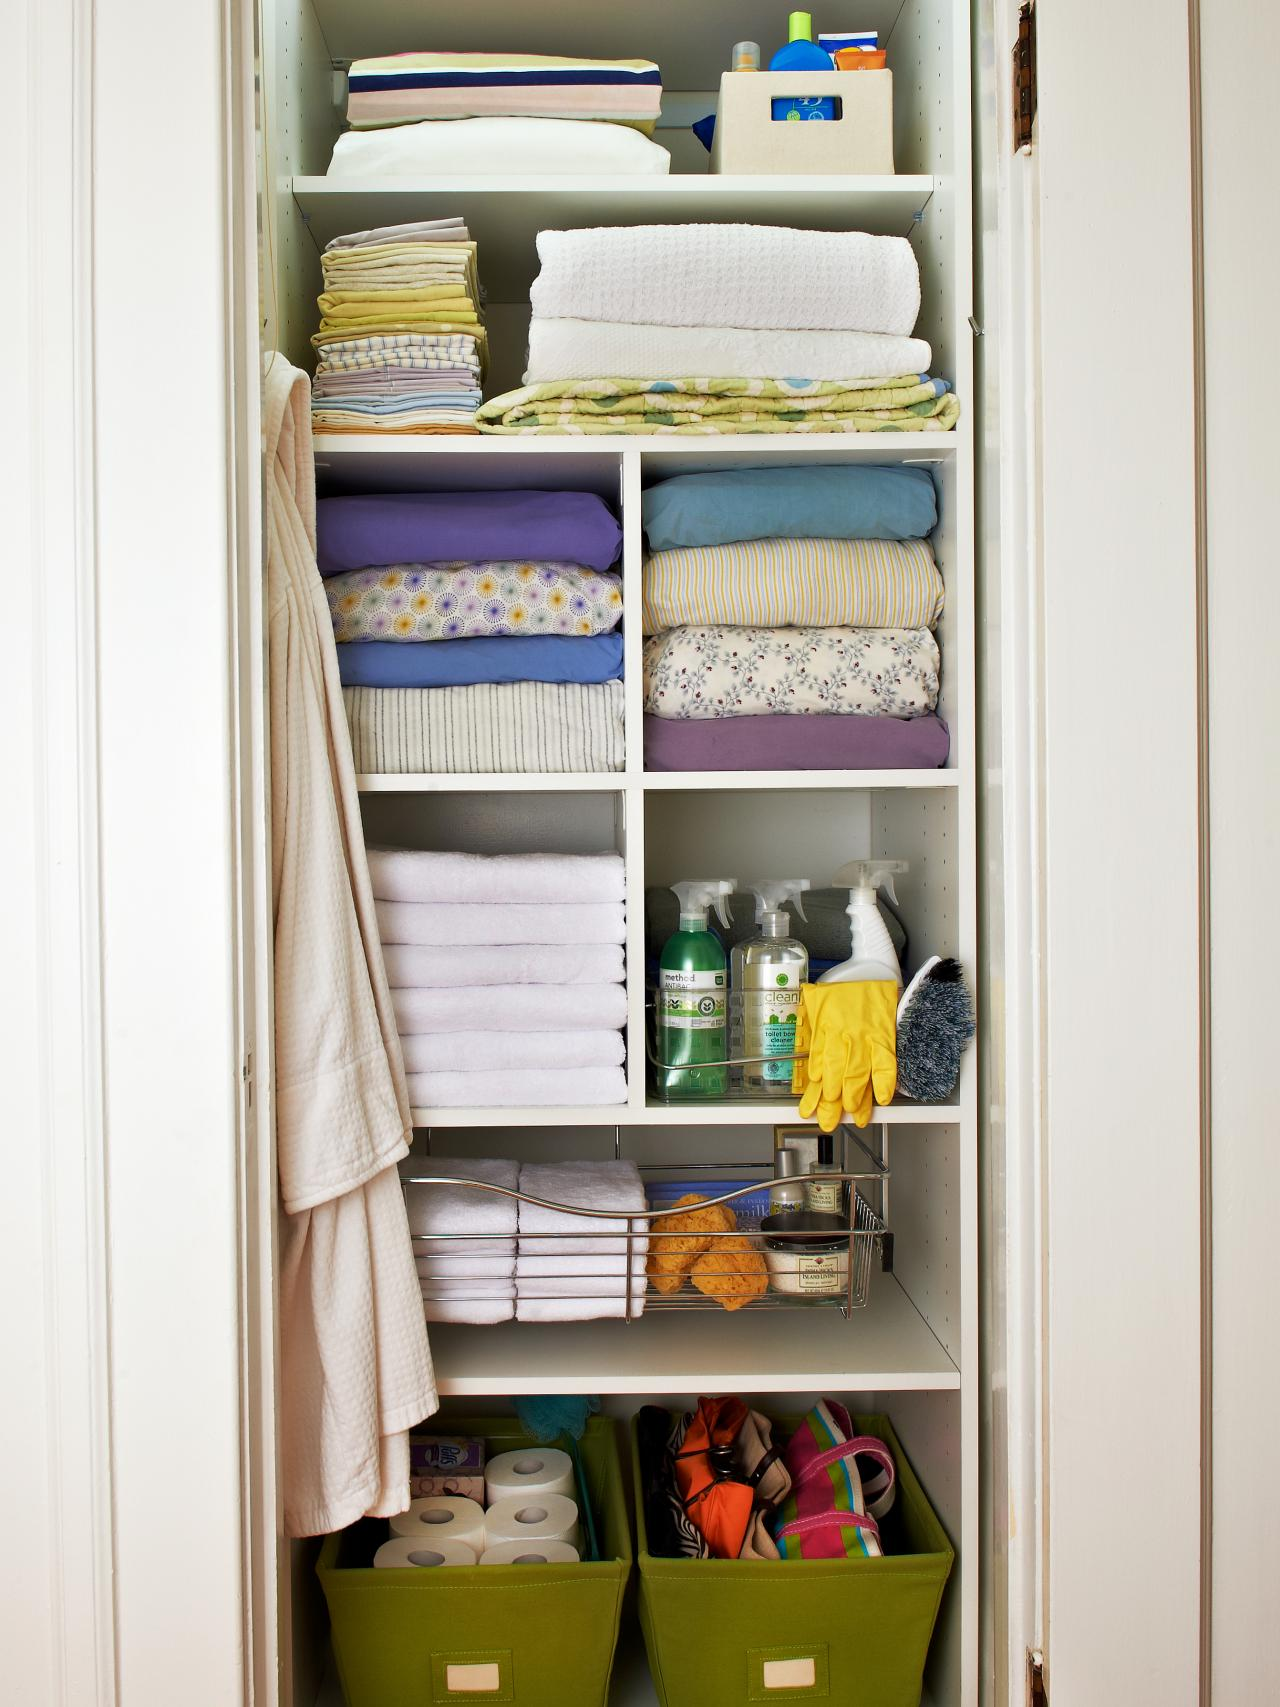 walk-in-linen-closet-design-photo-9